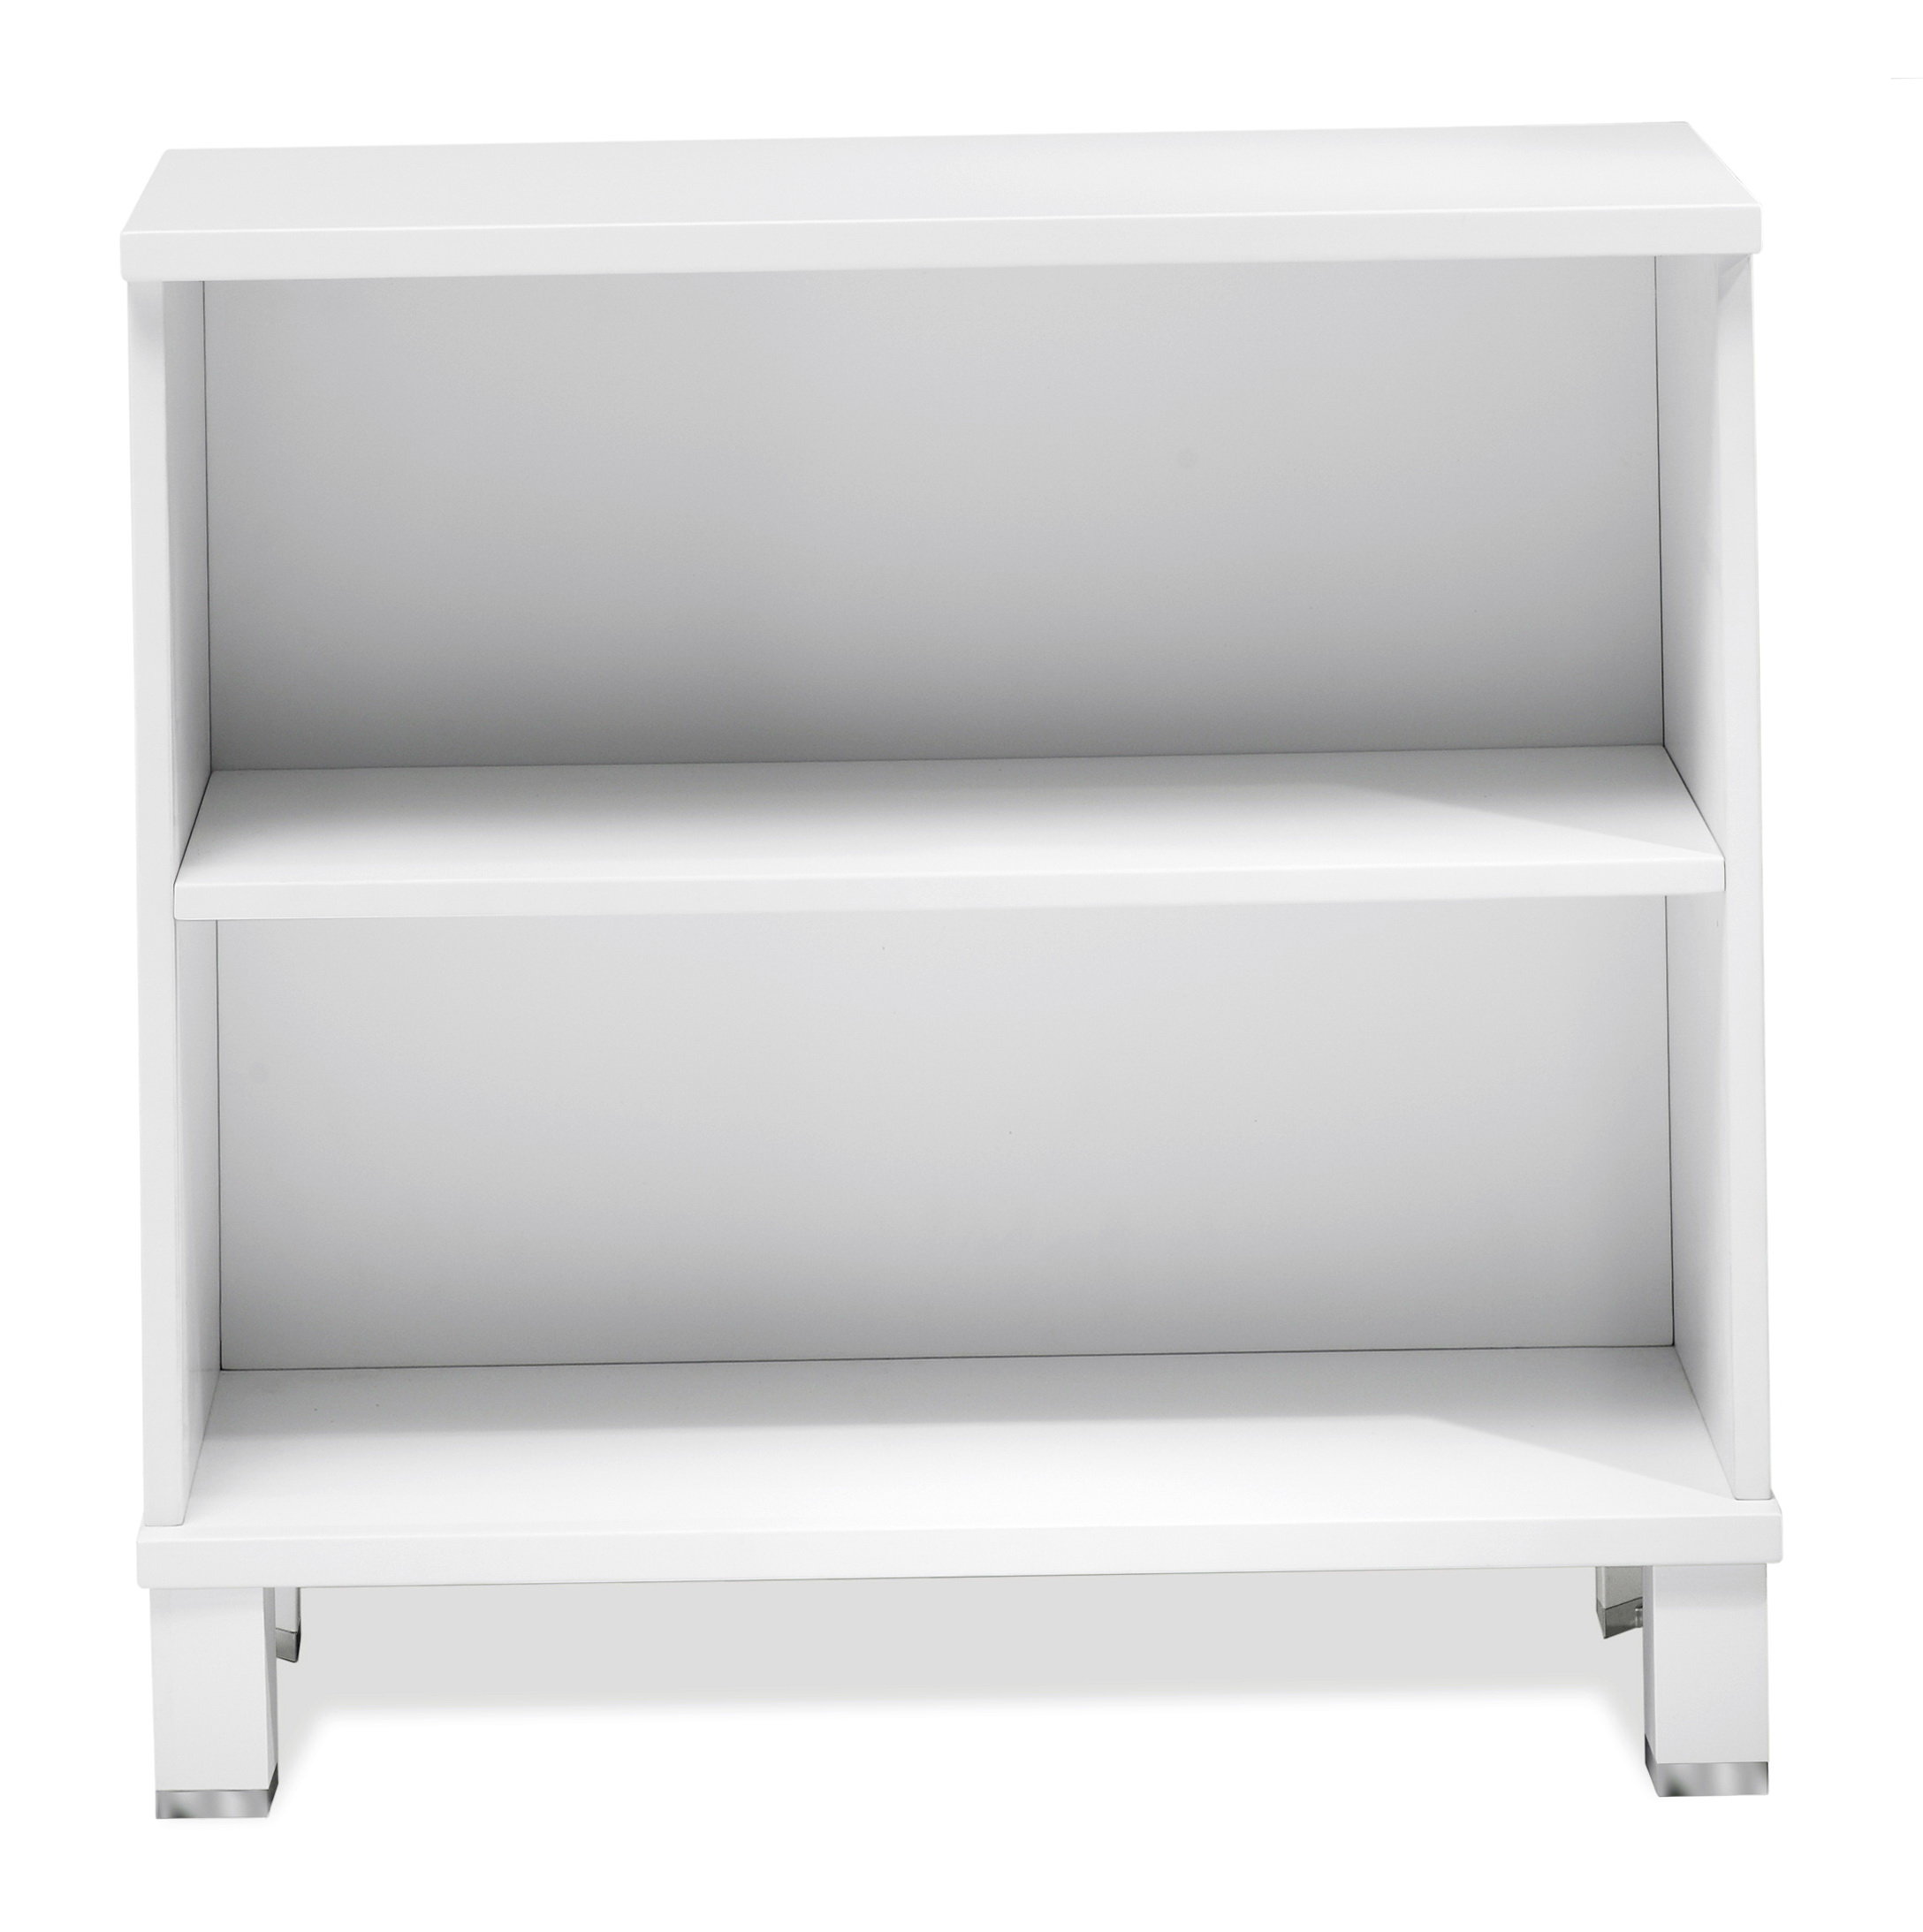 Two Shelf Bookcase White